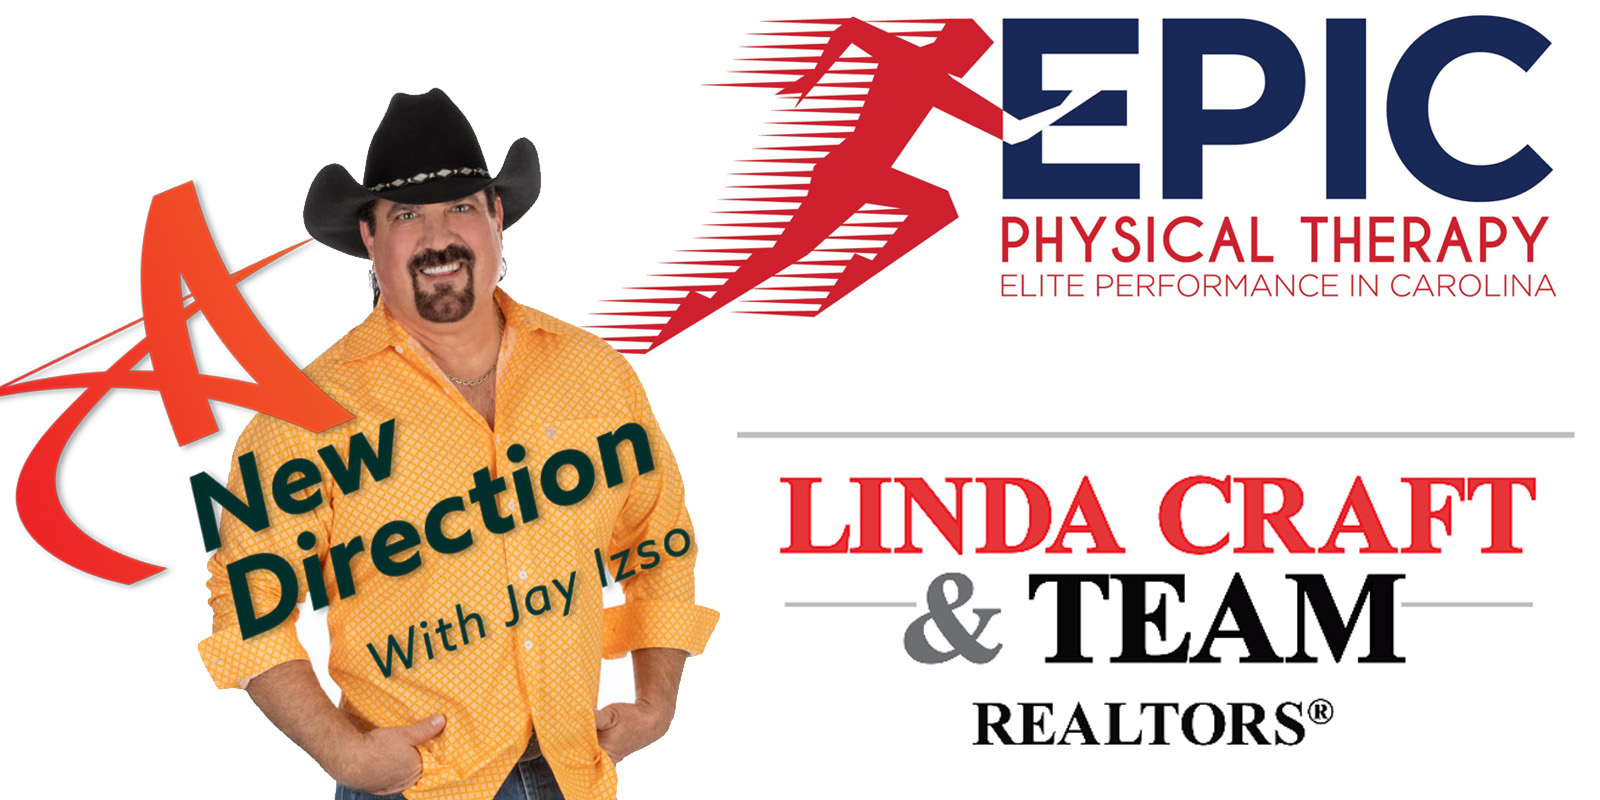 A New Direction Sponsors EPIC Physical Therapy and Linda Craft and Team, Realtors